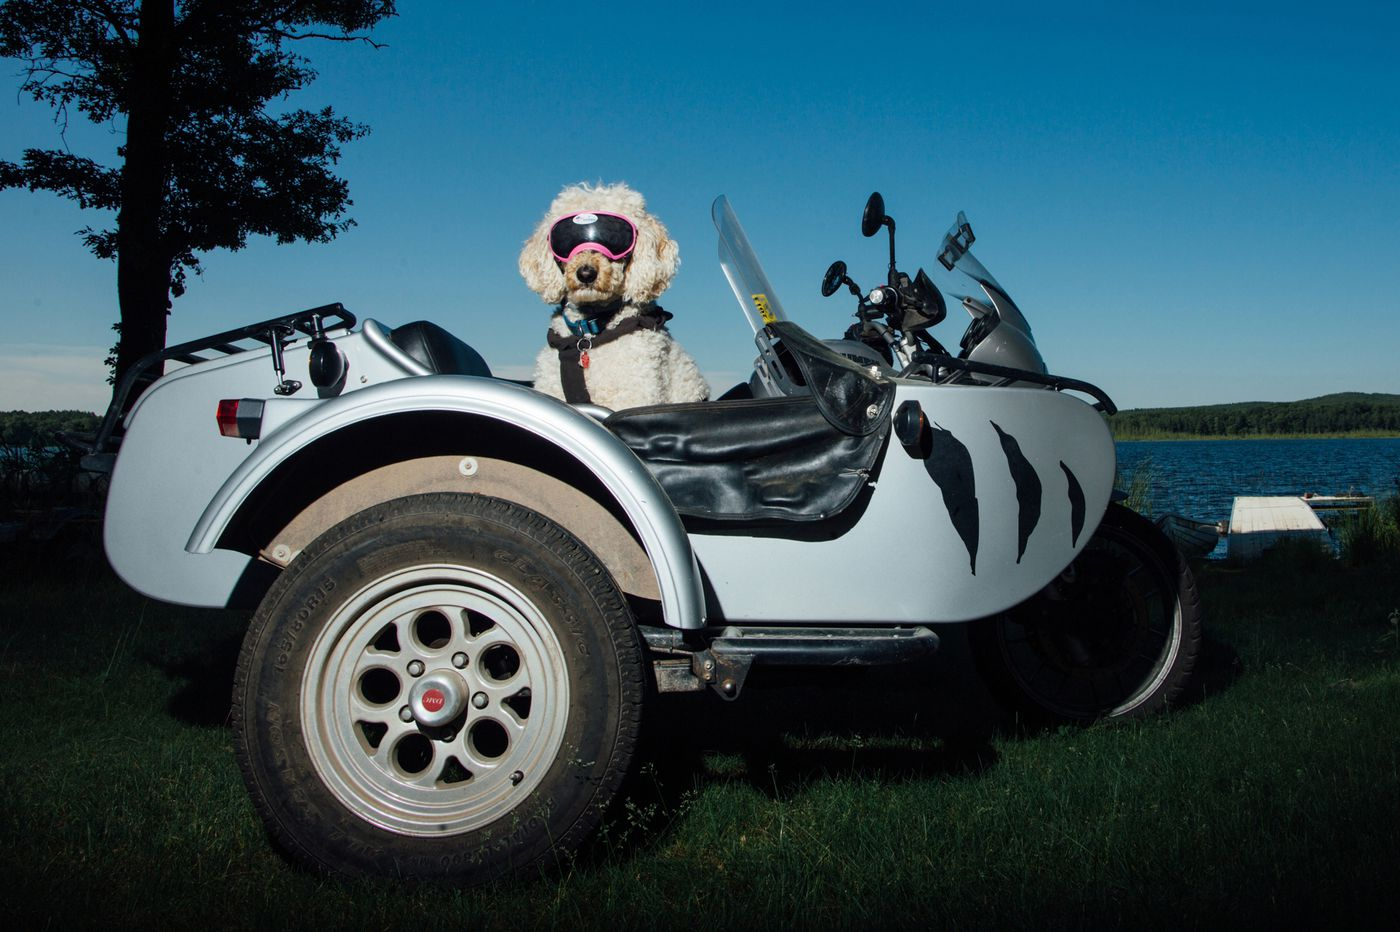 Sidecar dogs: On the road with some easy, furry riders